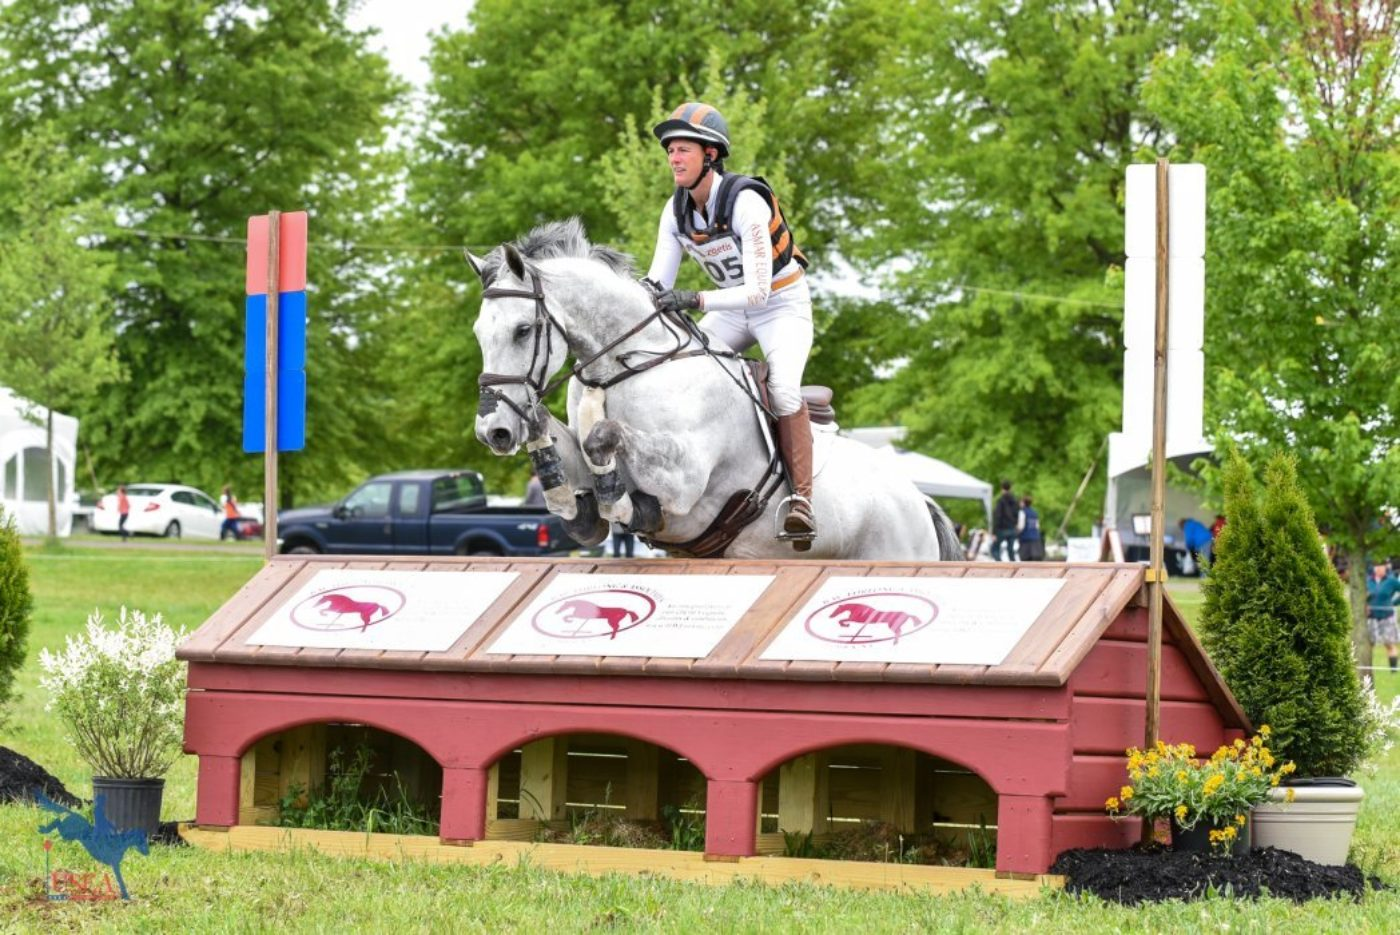 27th - Lauren Kieffer and Paramount Importance - 71.1